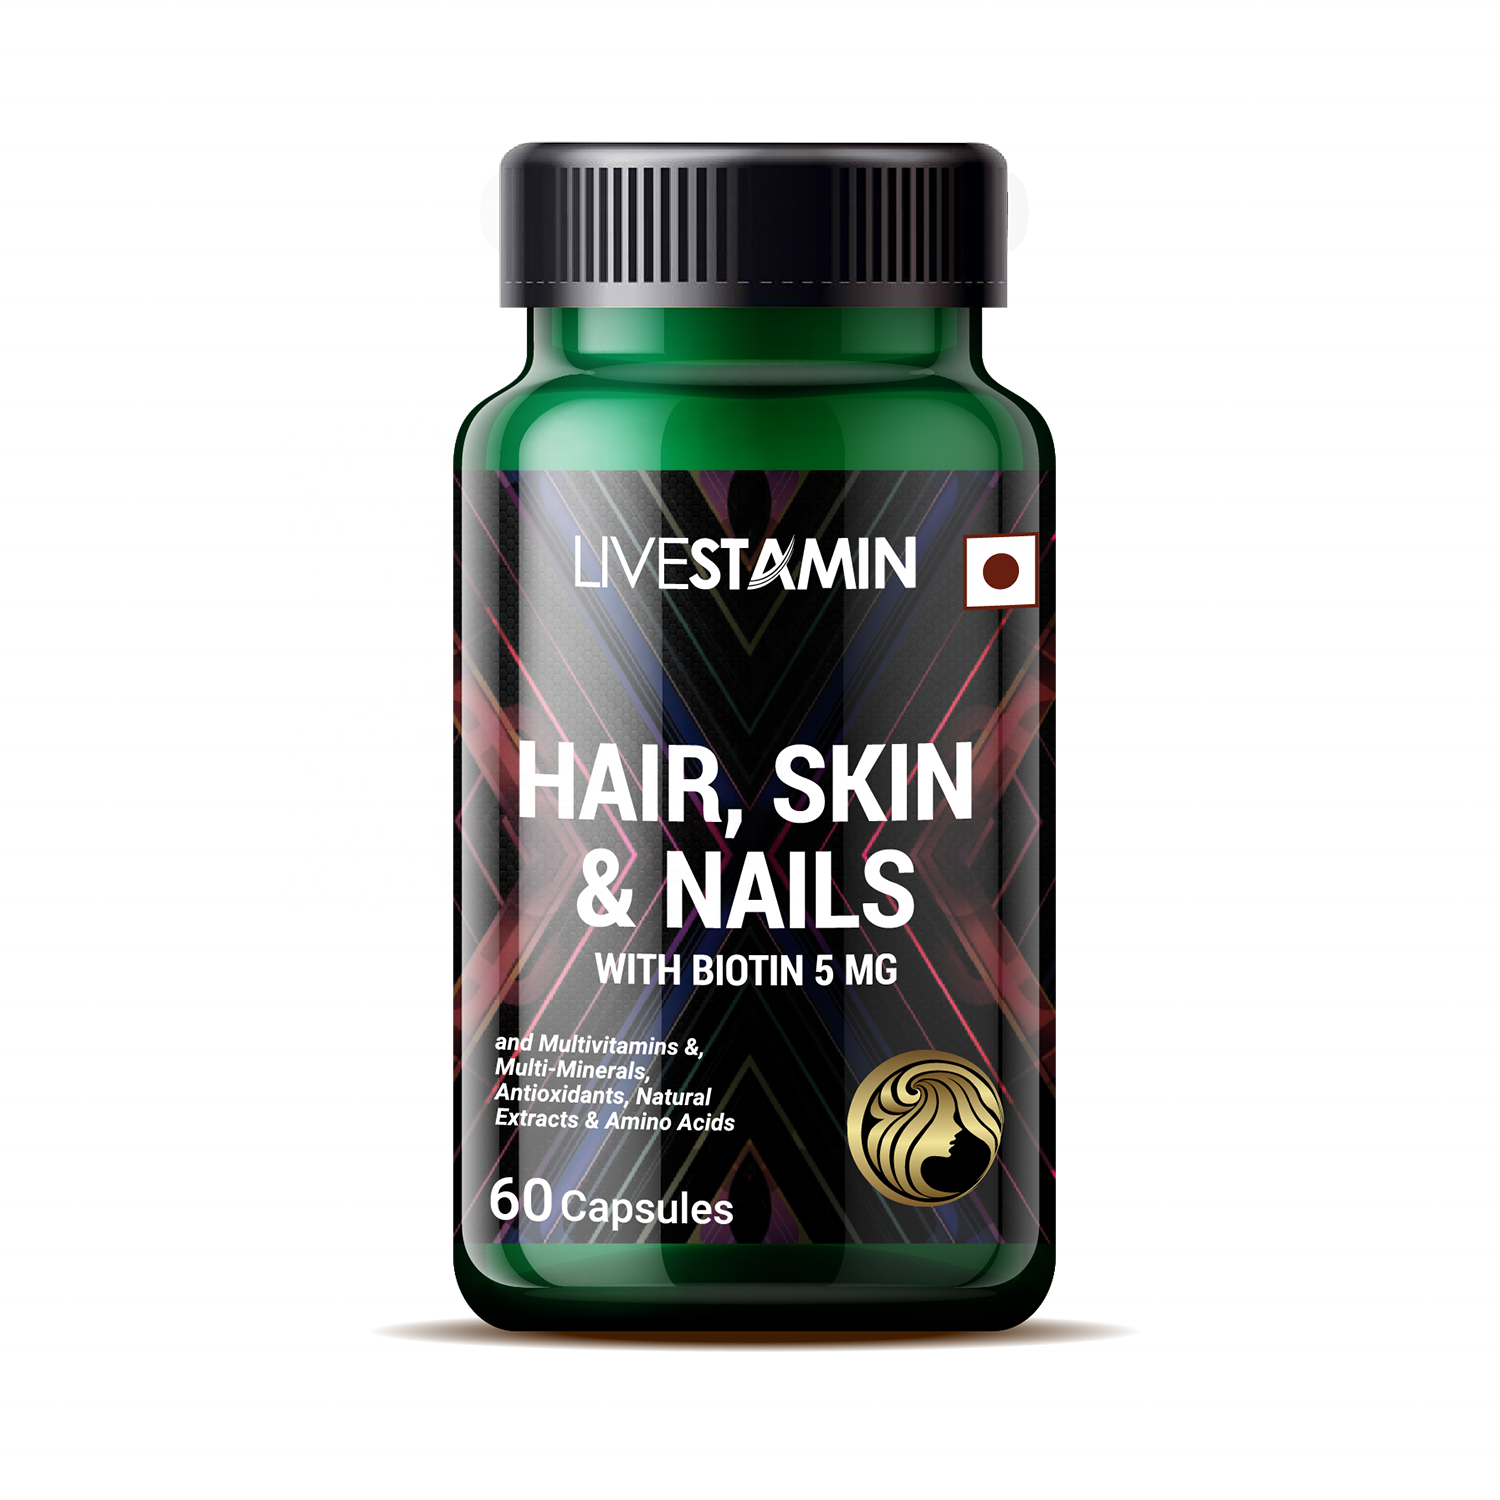 Advanced Hair Skin & Nails with Biotin 5000 mcg Capsules Vitamins, Minerals & Herbal extracts Supplement Private Label GMP ISO